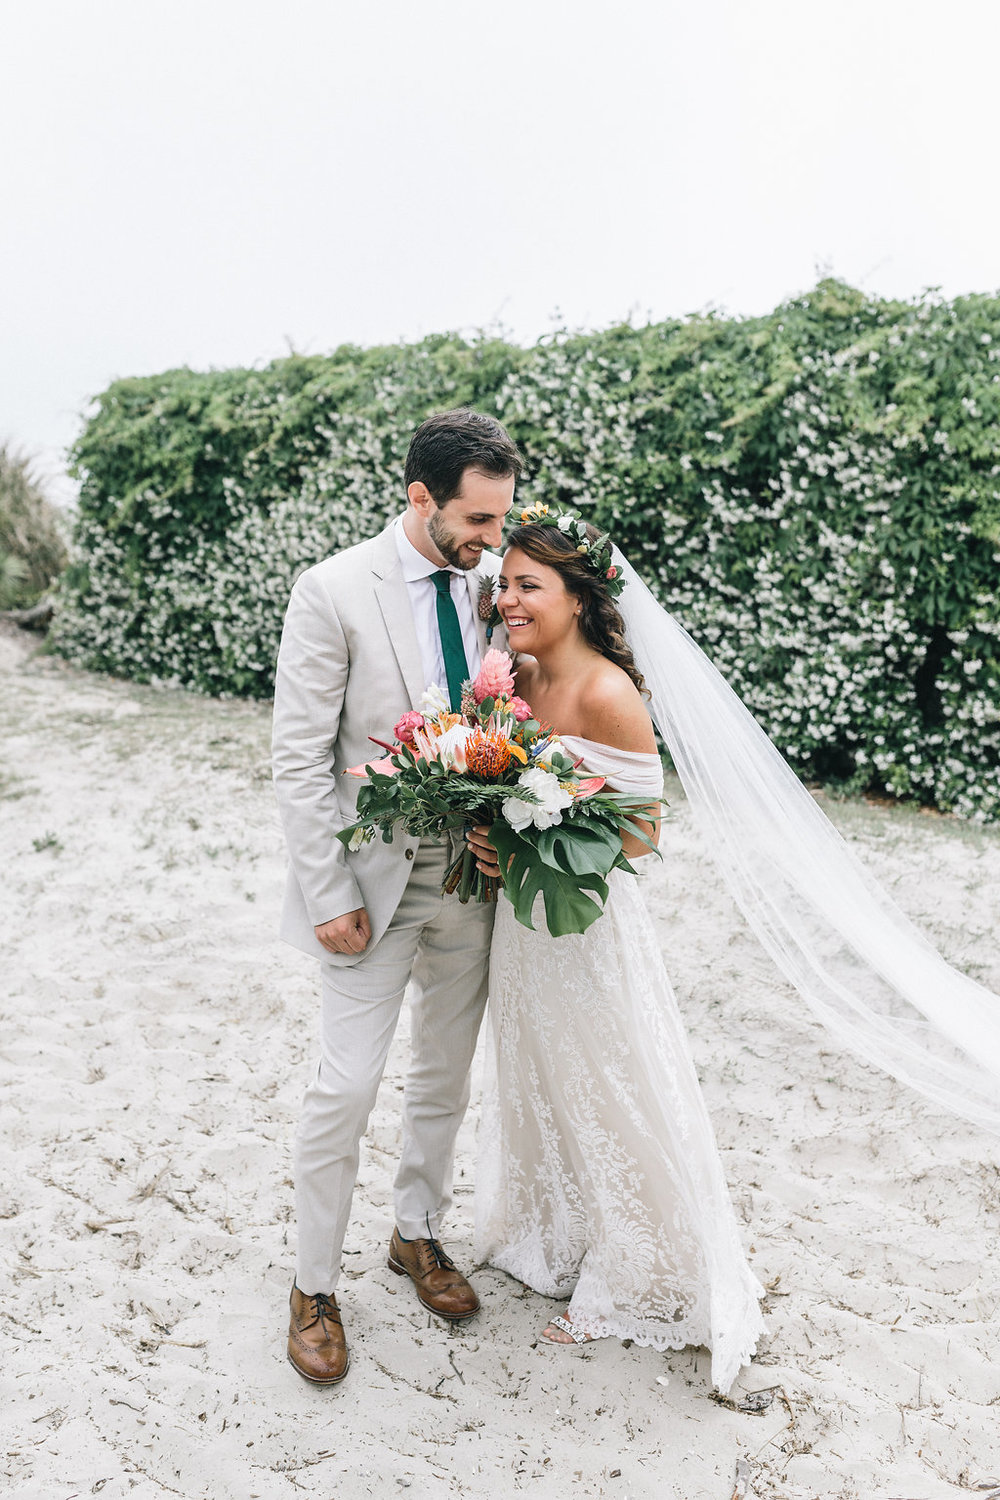 ivory-and-beau-bridal-boutique-candace-and-kevin-mackensey-alexander-photography-tropical-wedding-on-hilton-head-island-8.jpg